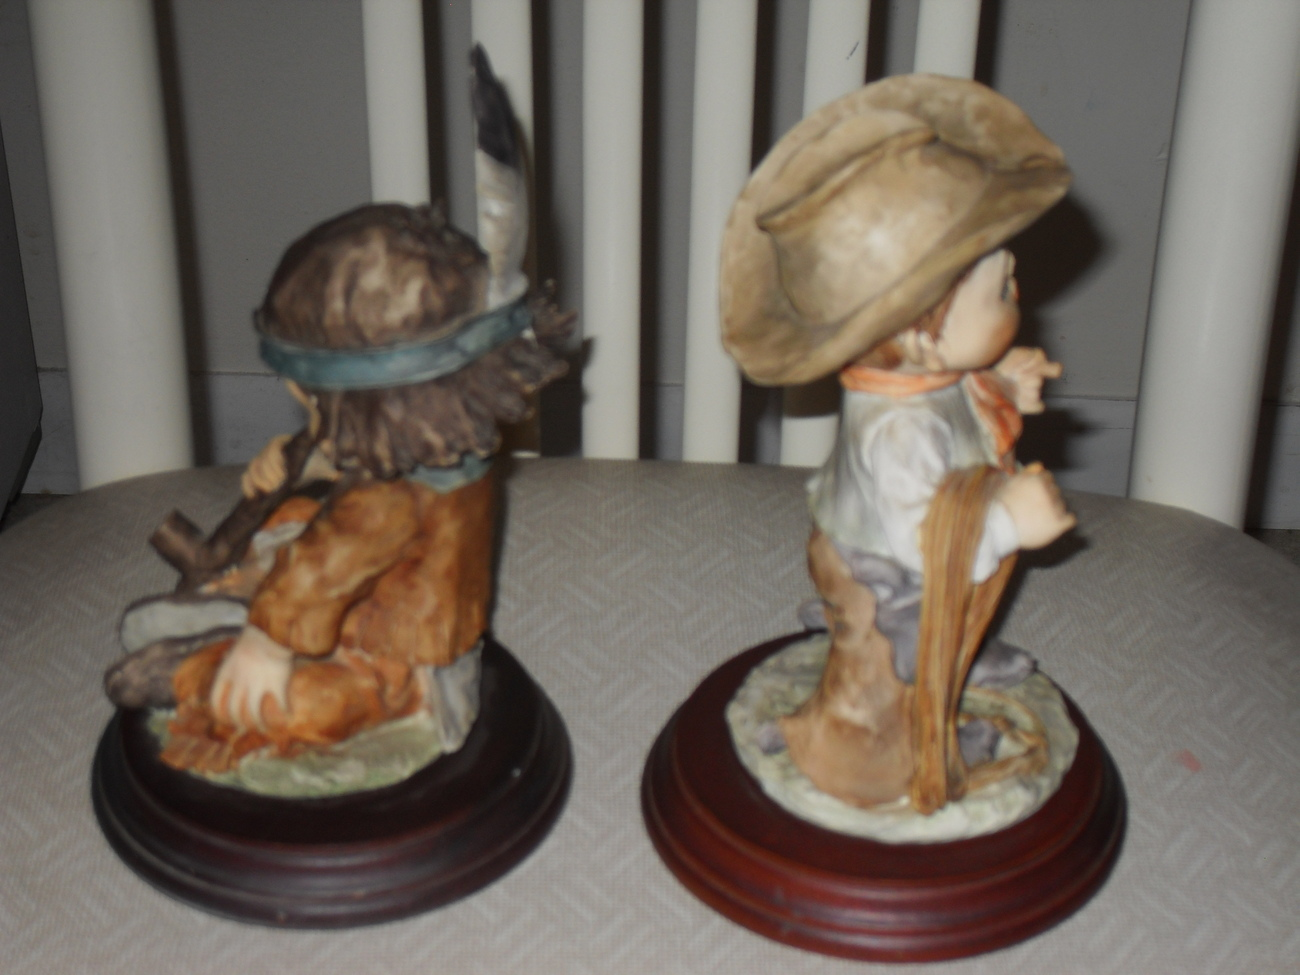 Vintage Cowboy and Indian Figurines